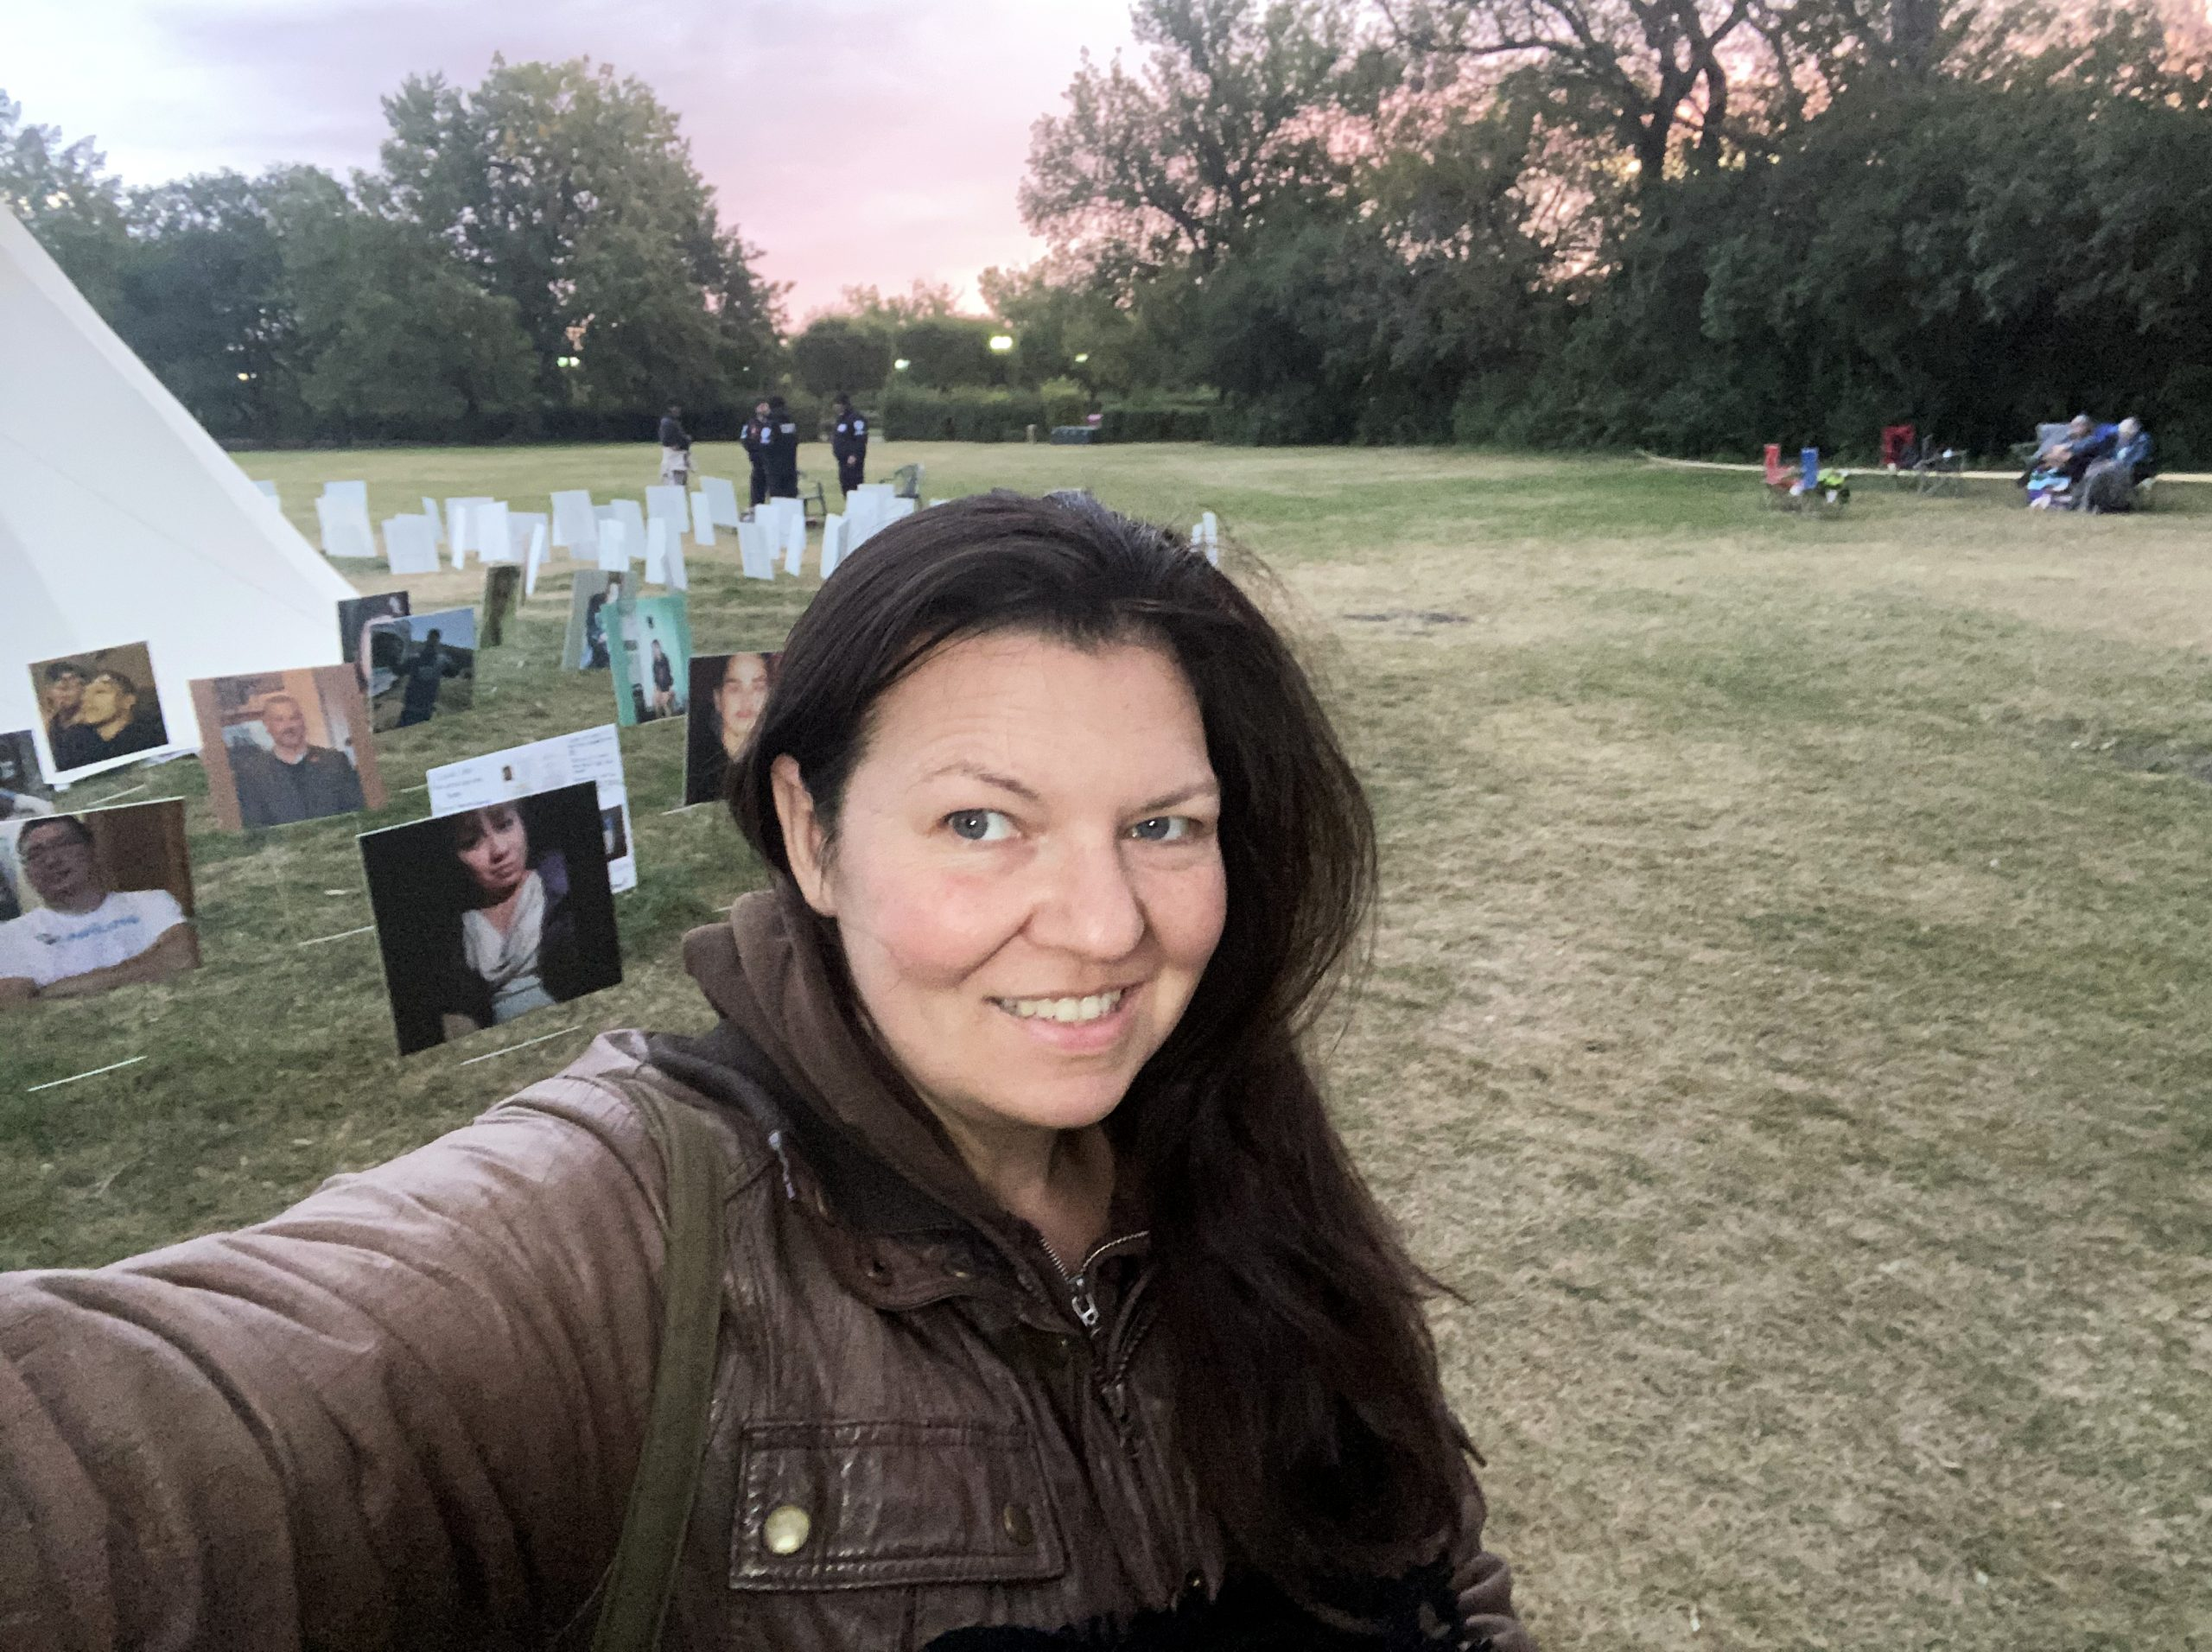 Elizabeth Cooper at the Walking with our Angels teepee camp waiting for a sunrise pipe ceremony to start is support of suicide prevention.